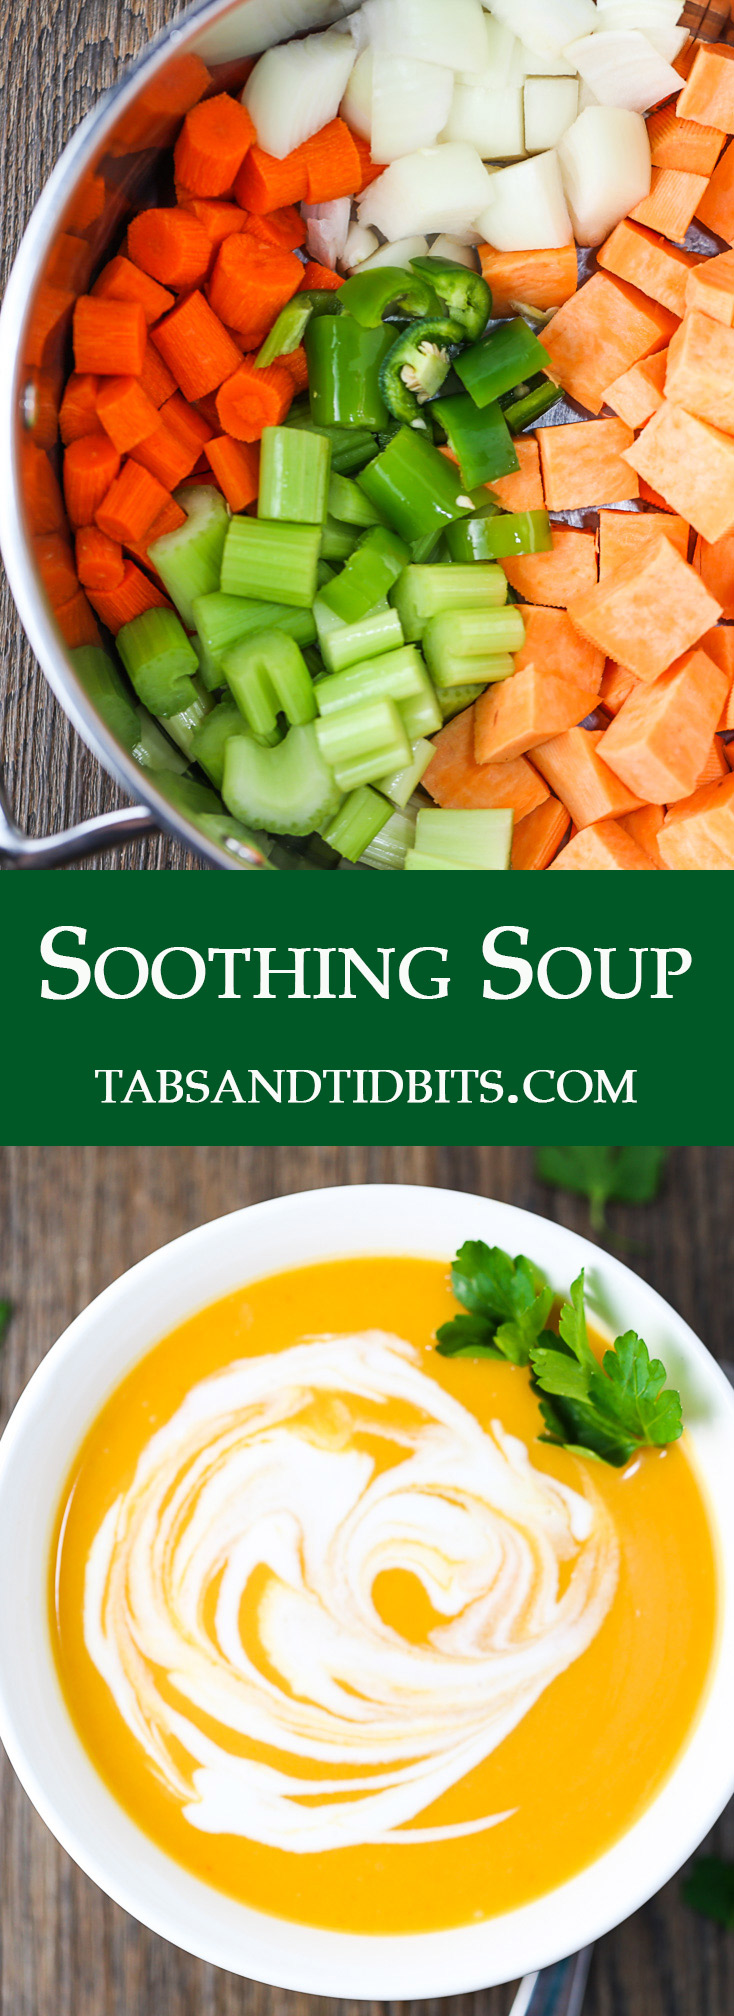 Sweet potatoes, carrots, onions, celery, and jalapenos are blended together to create a smooth and soothing soup!